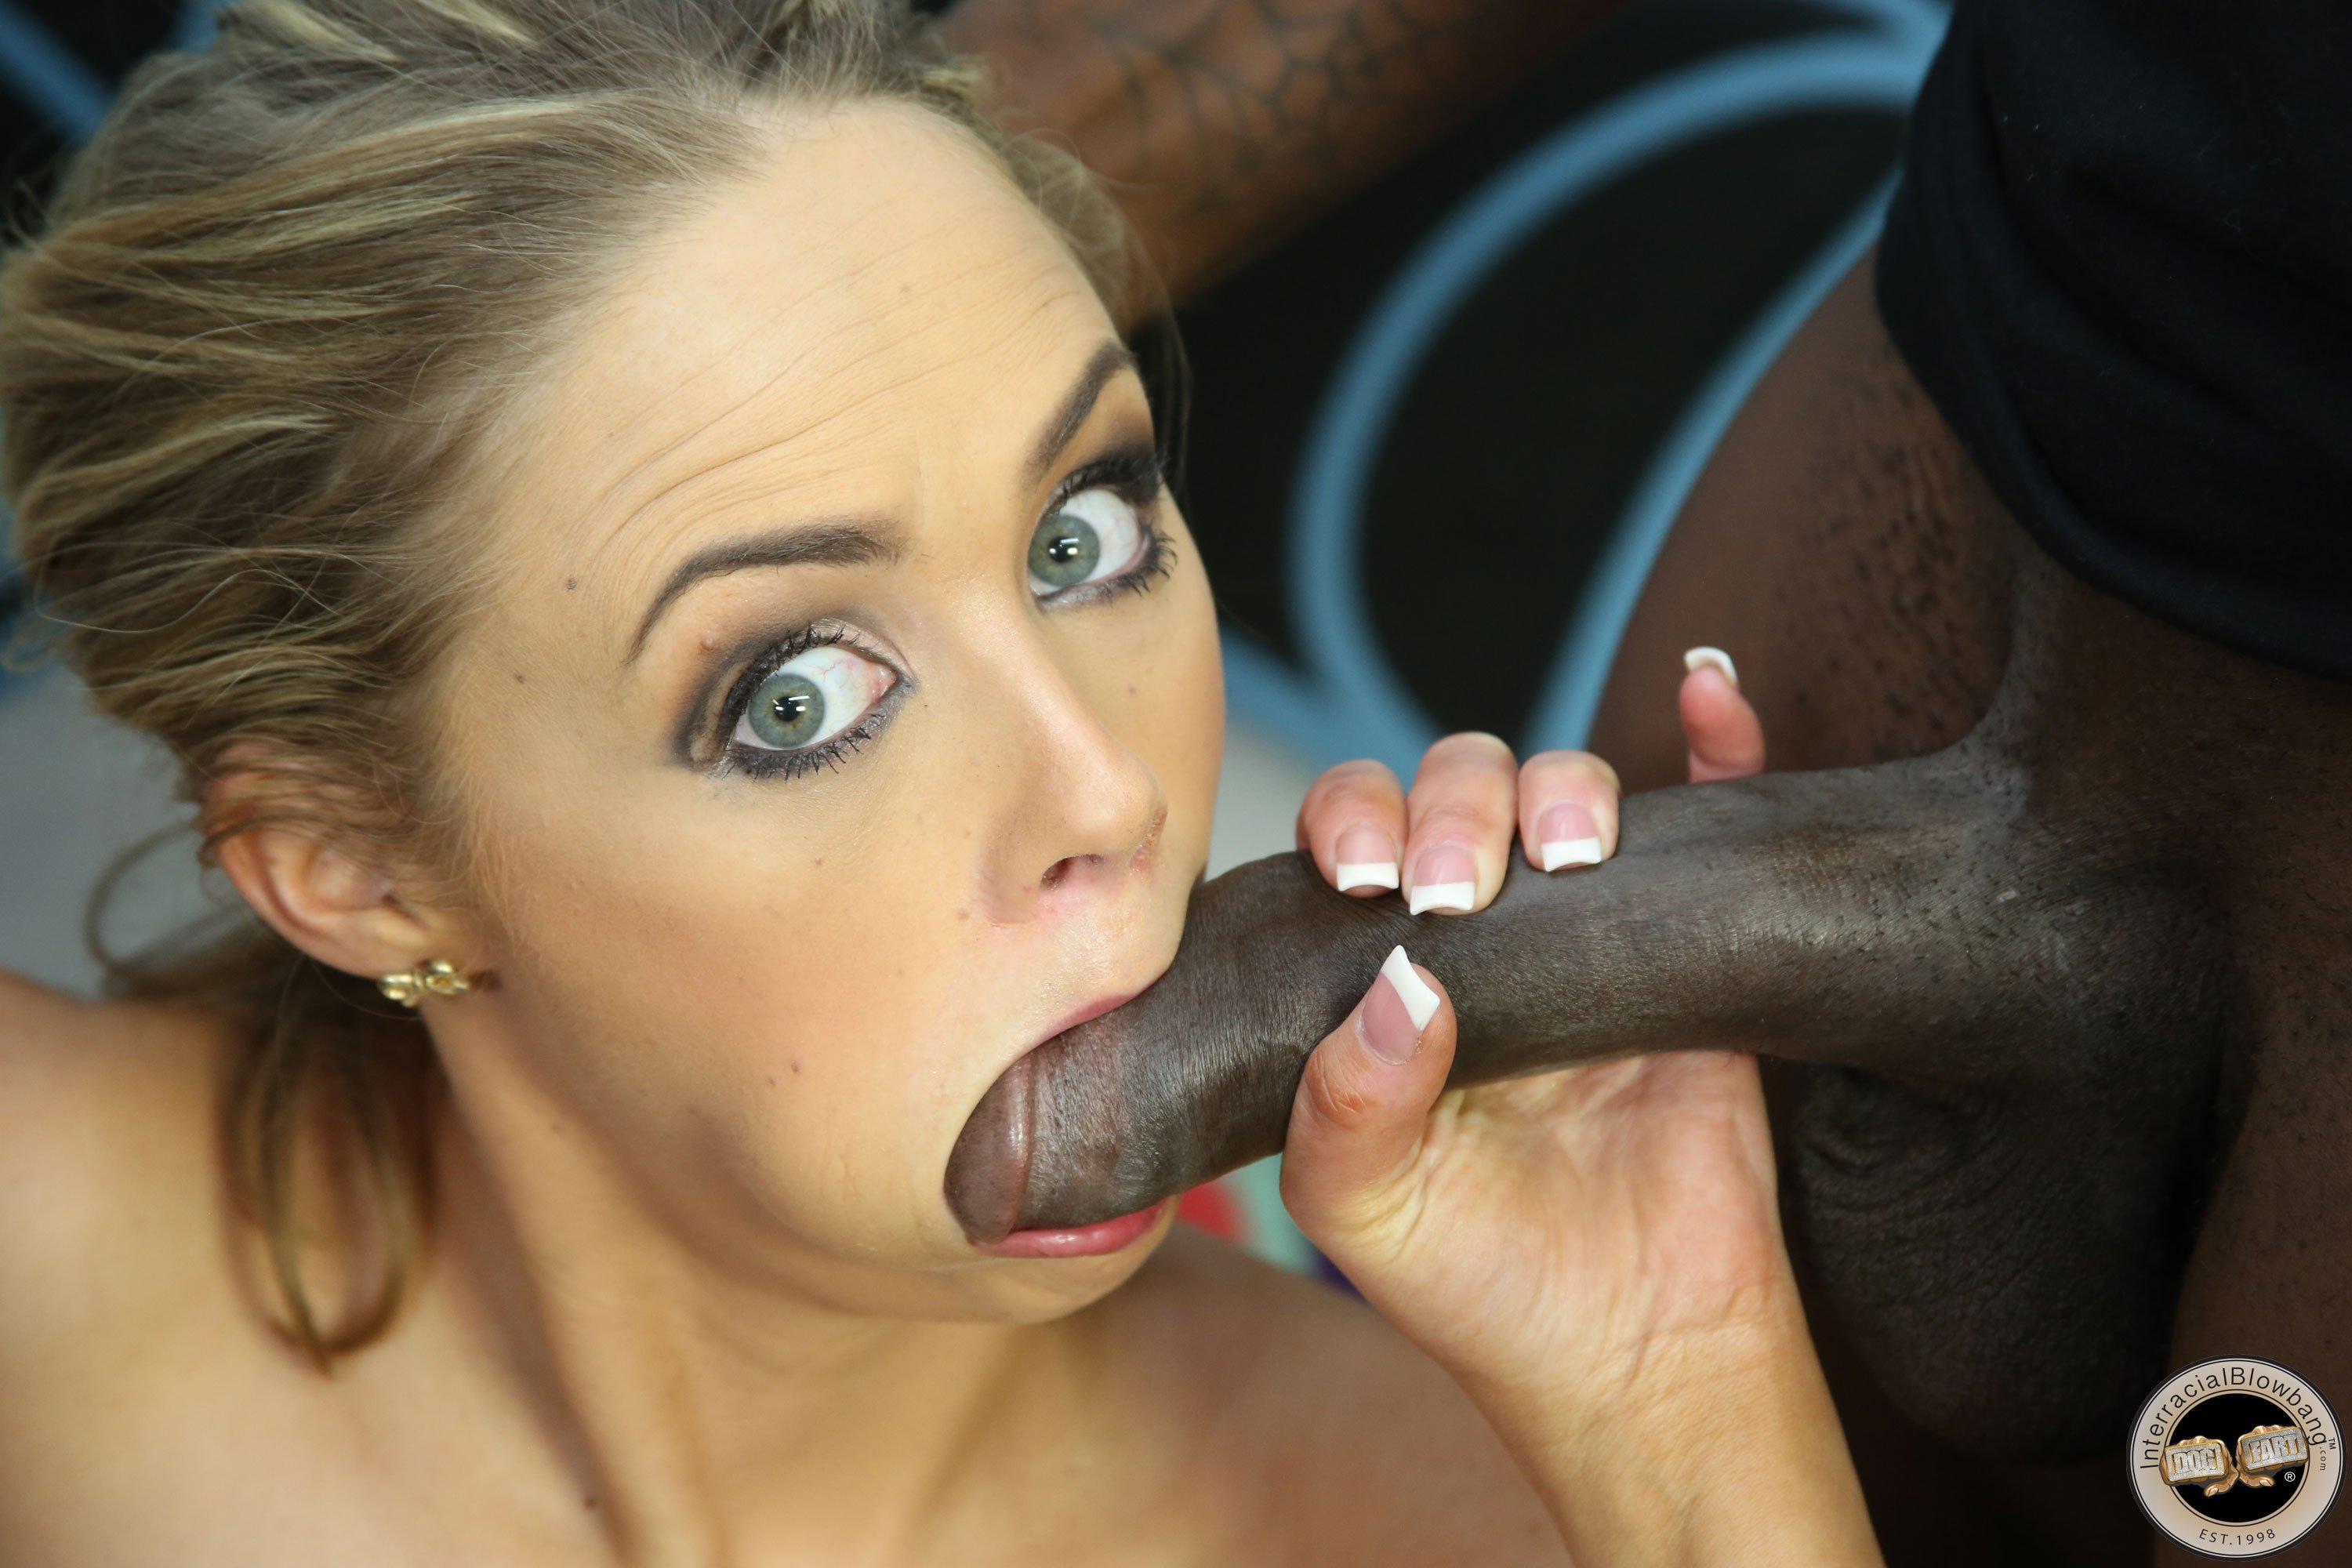 Sonna west Wife exchange party real tv show